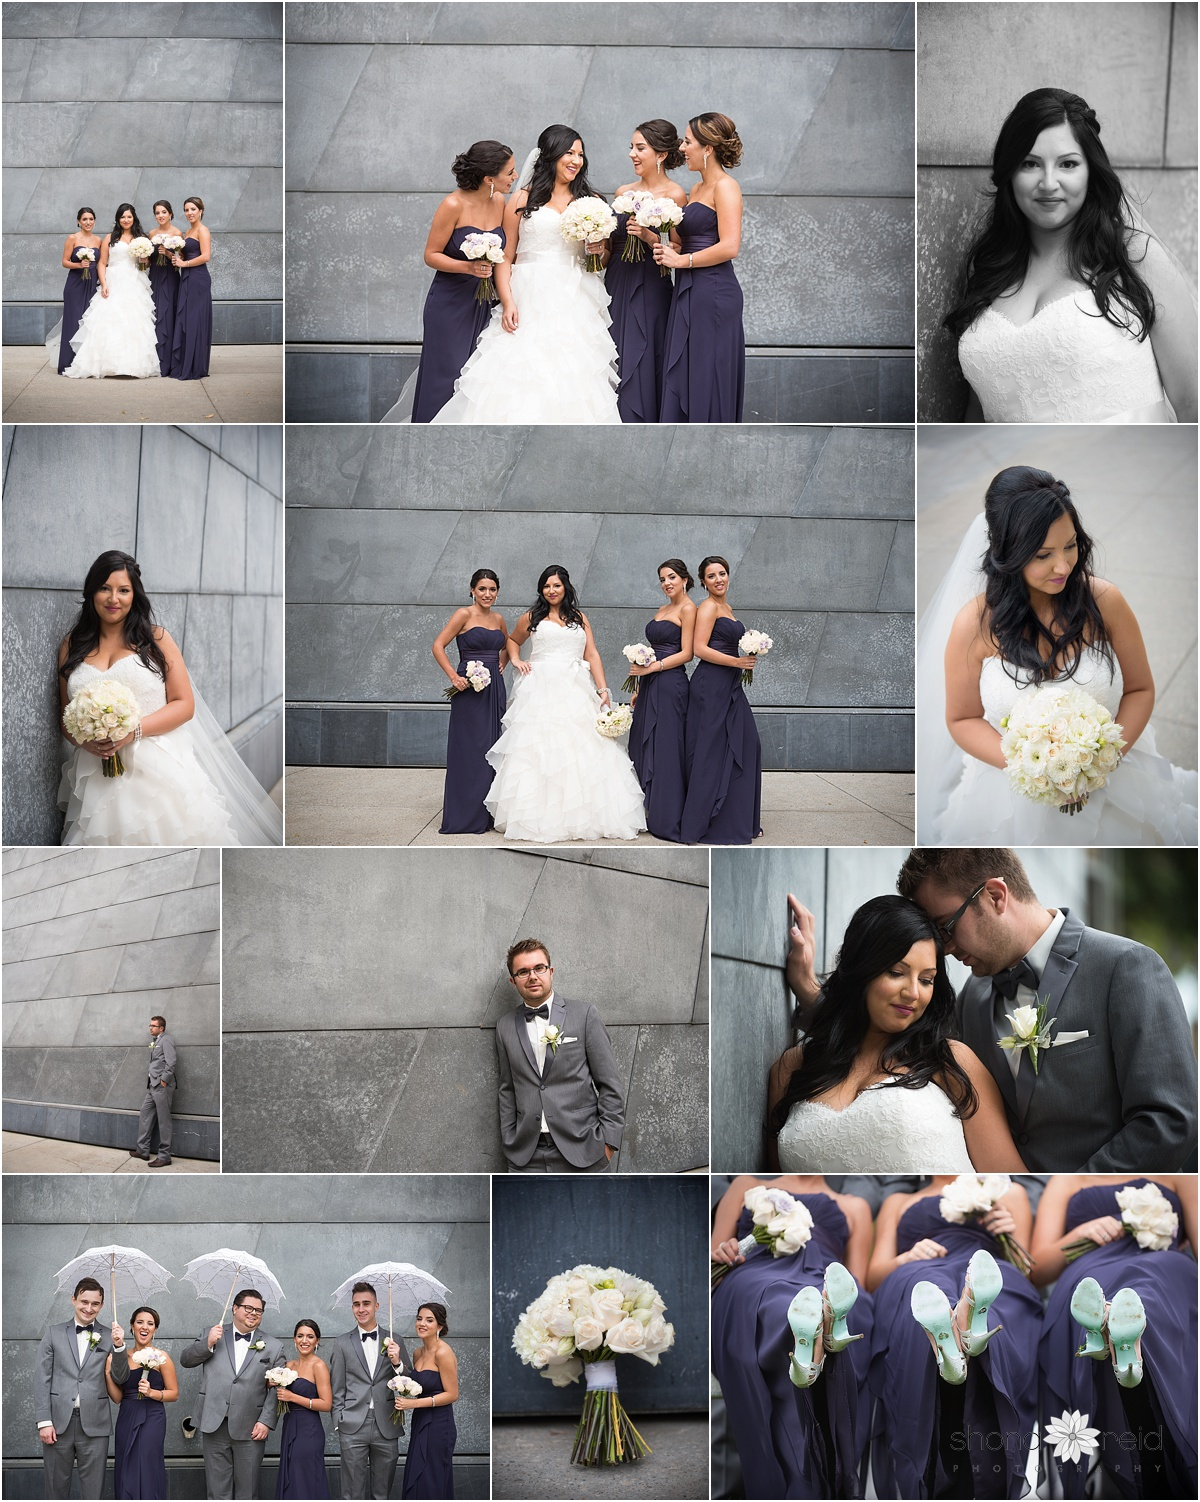 Edmonton Wedding Photography, bridal party